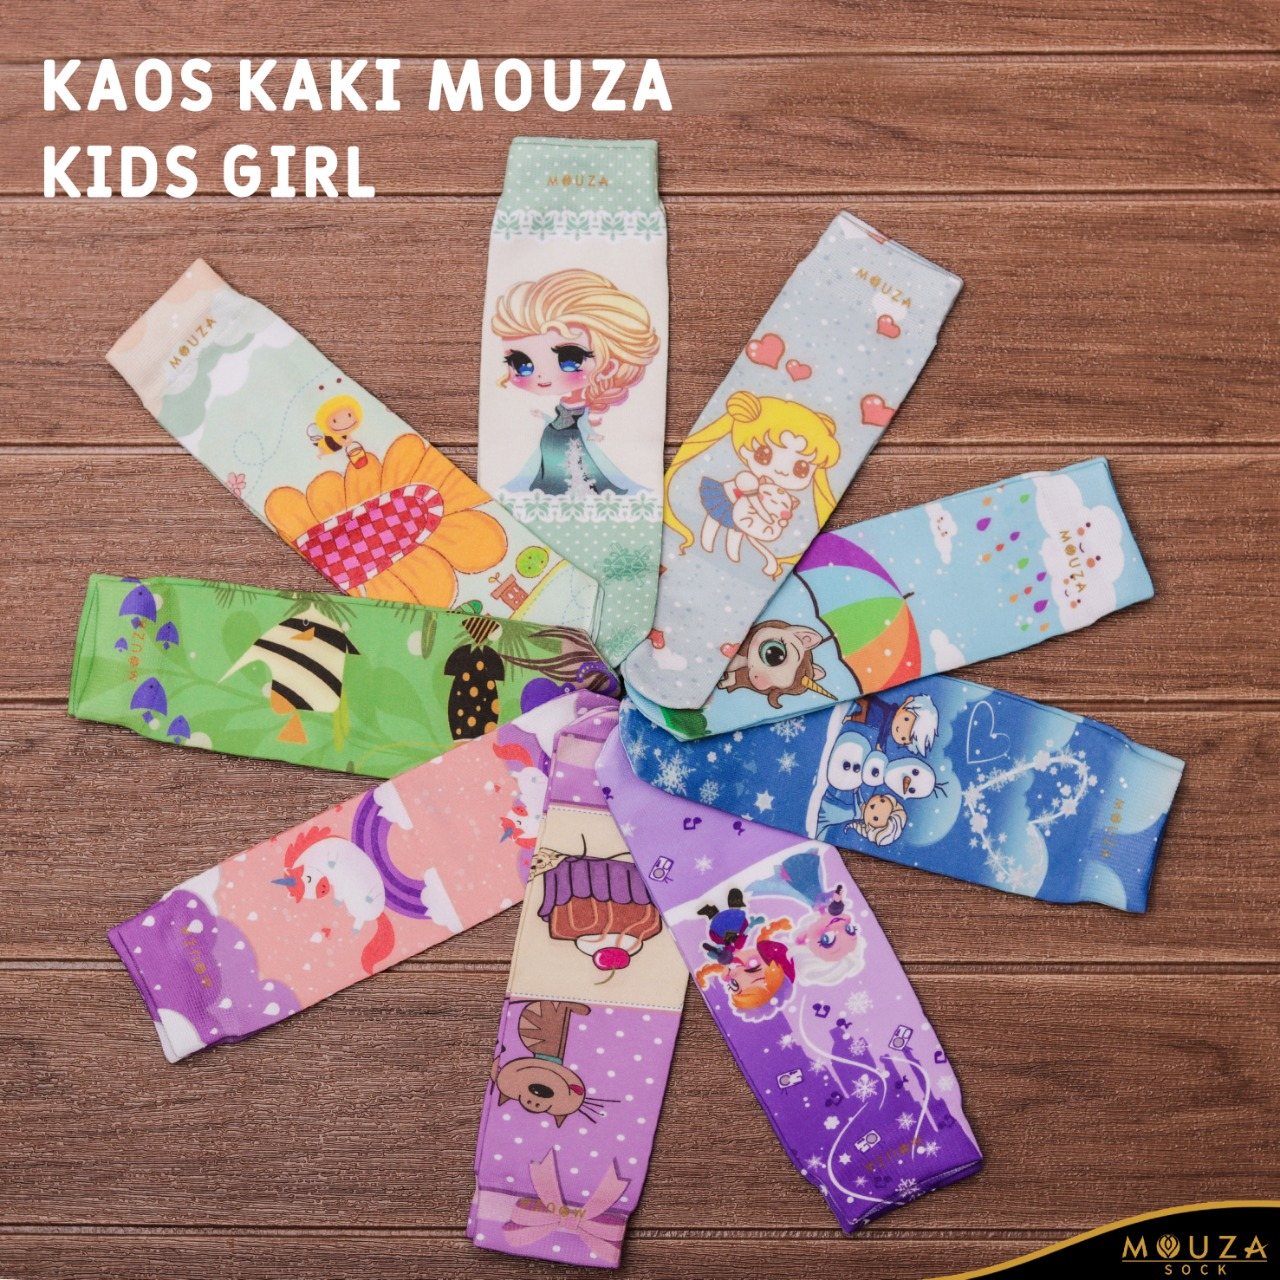 Free Stock Kaos Kaki Mouza Kids Girl Januari (33-41)